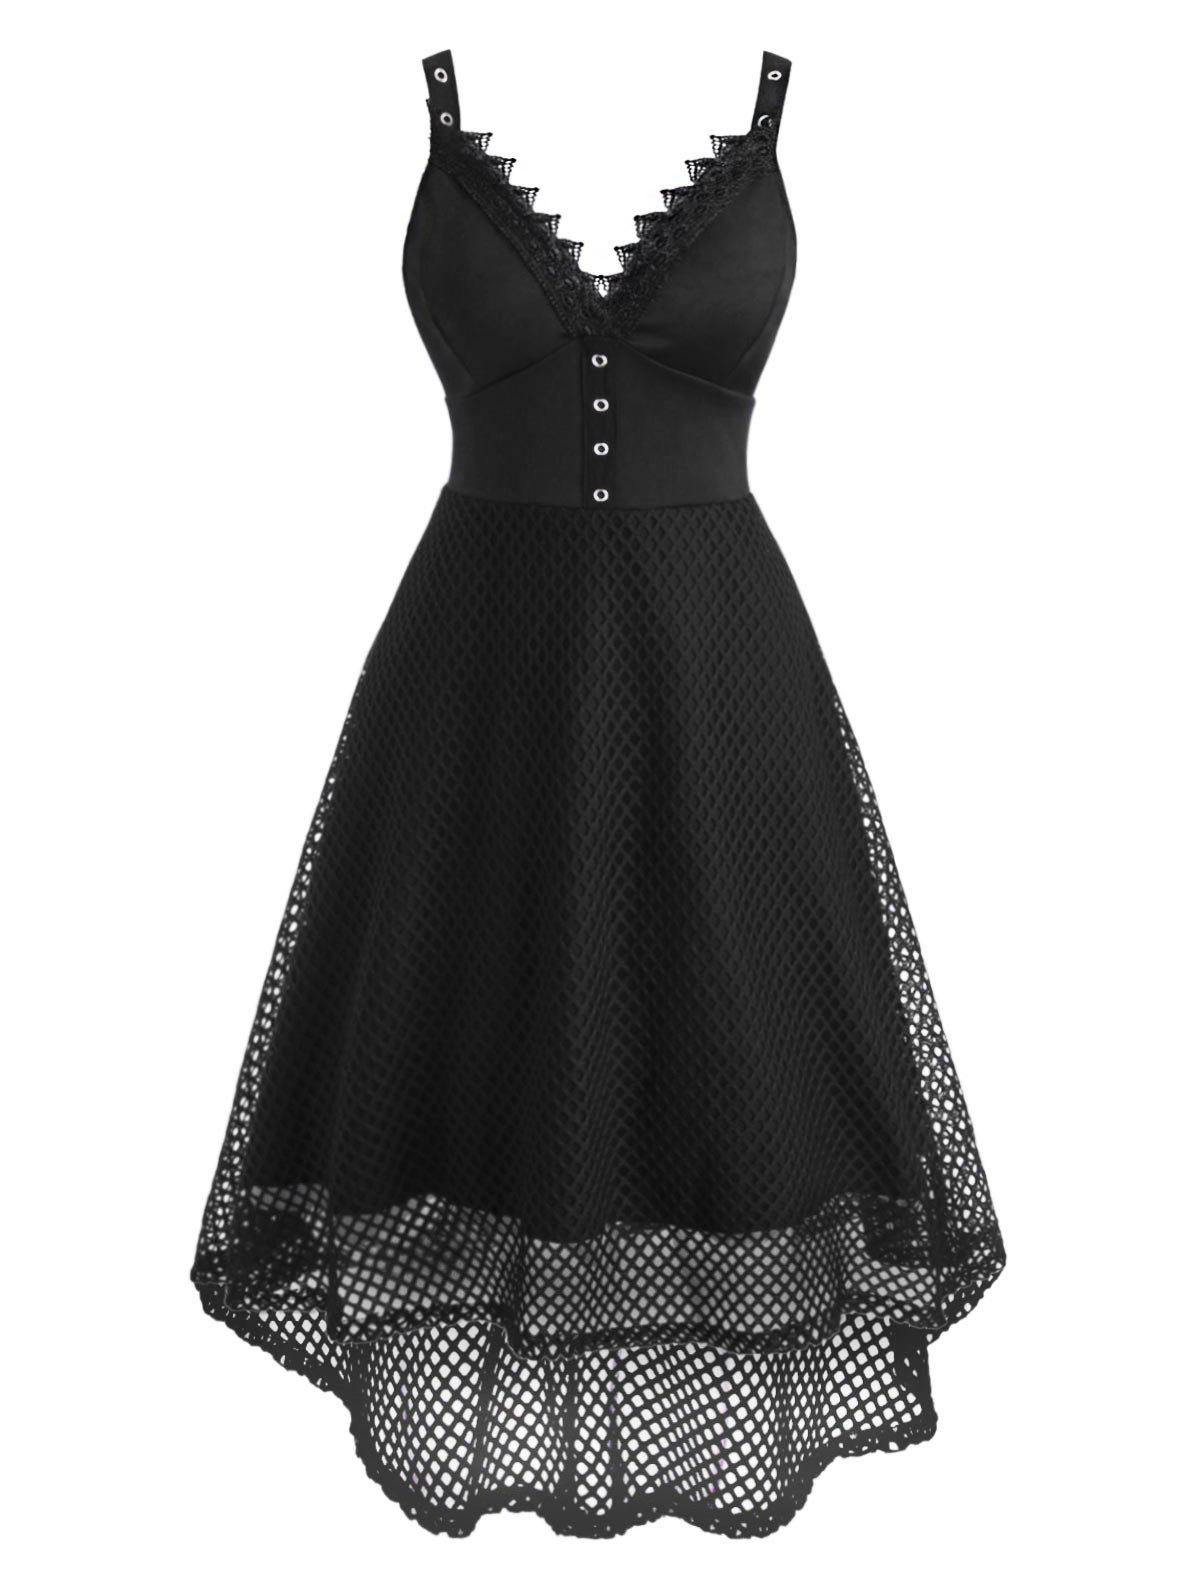 Fishnet Lace Insert Empire Waist High Low Grommet Dress - BLACK L